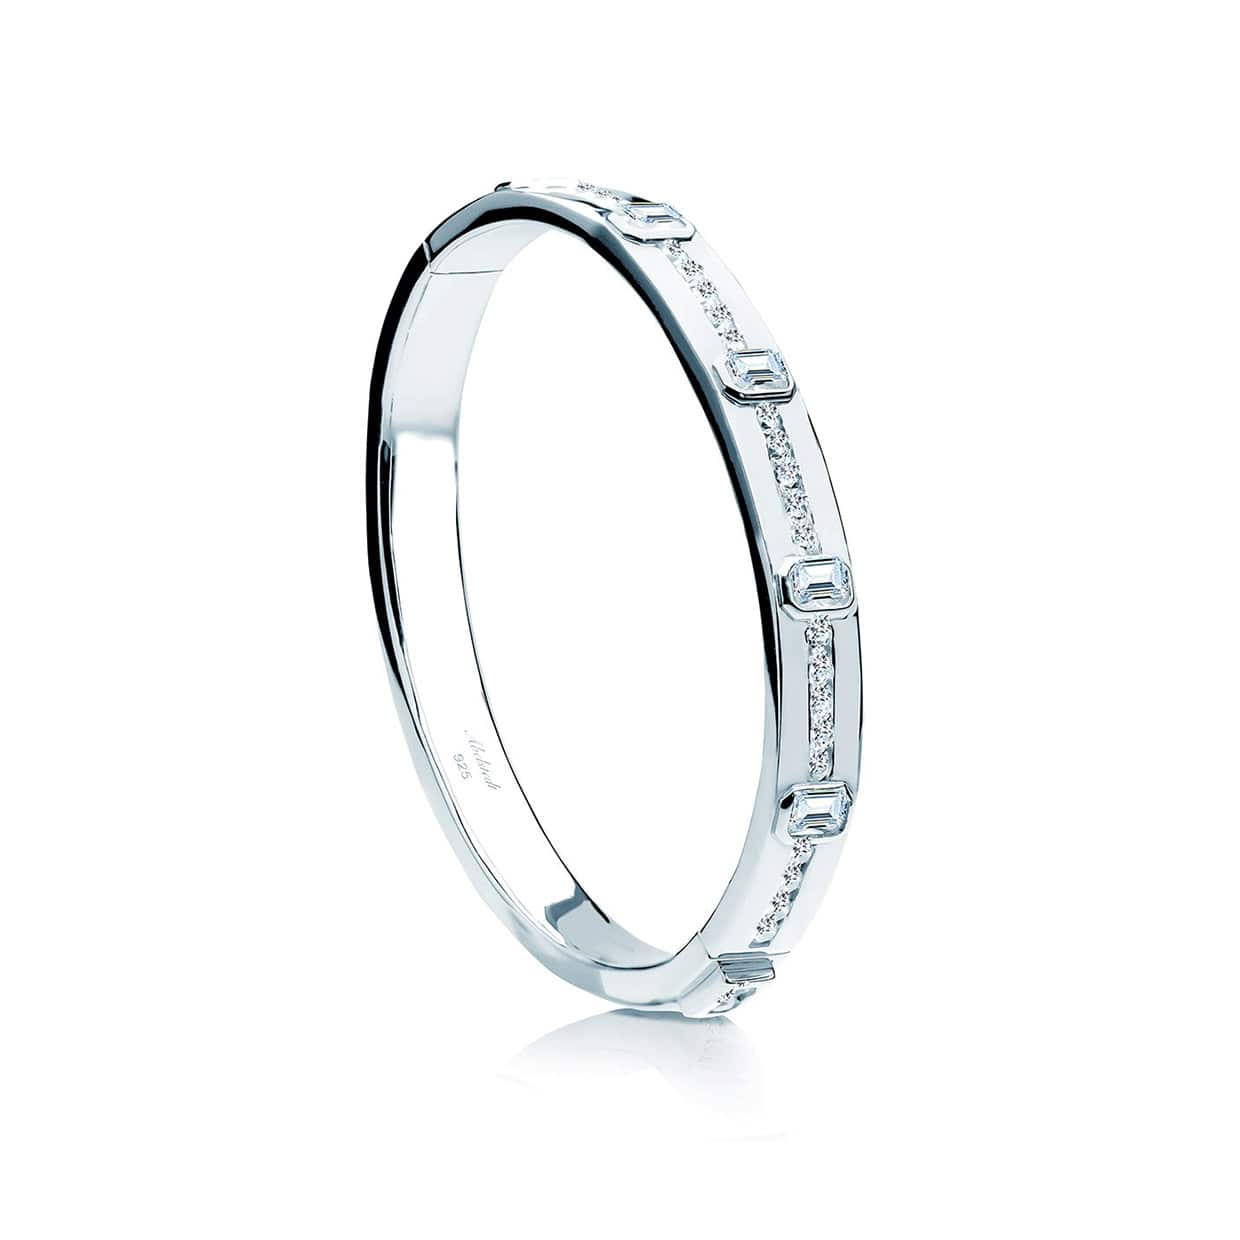 Abelstedt A Silver Bangle